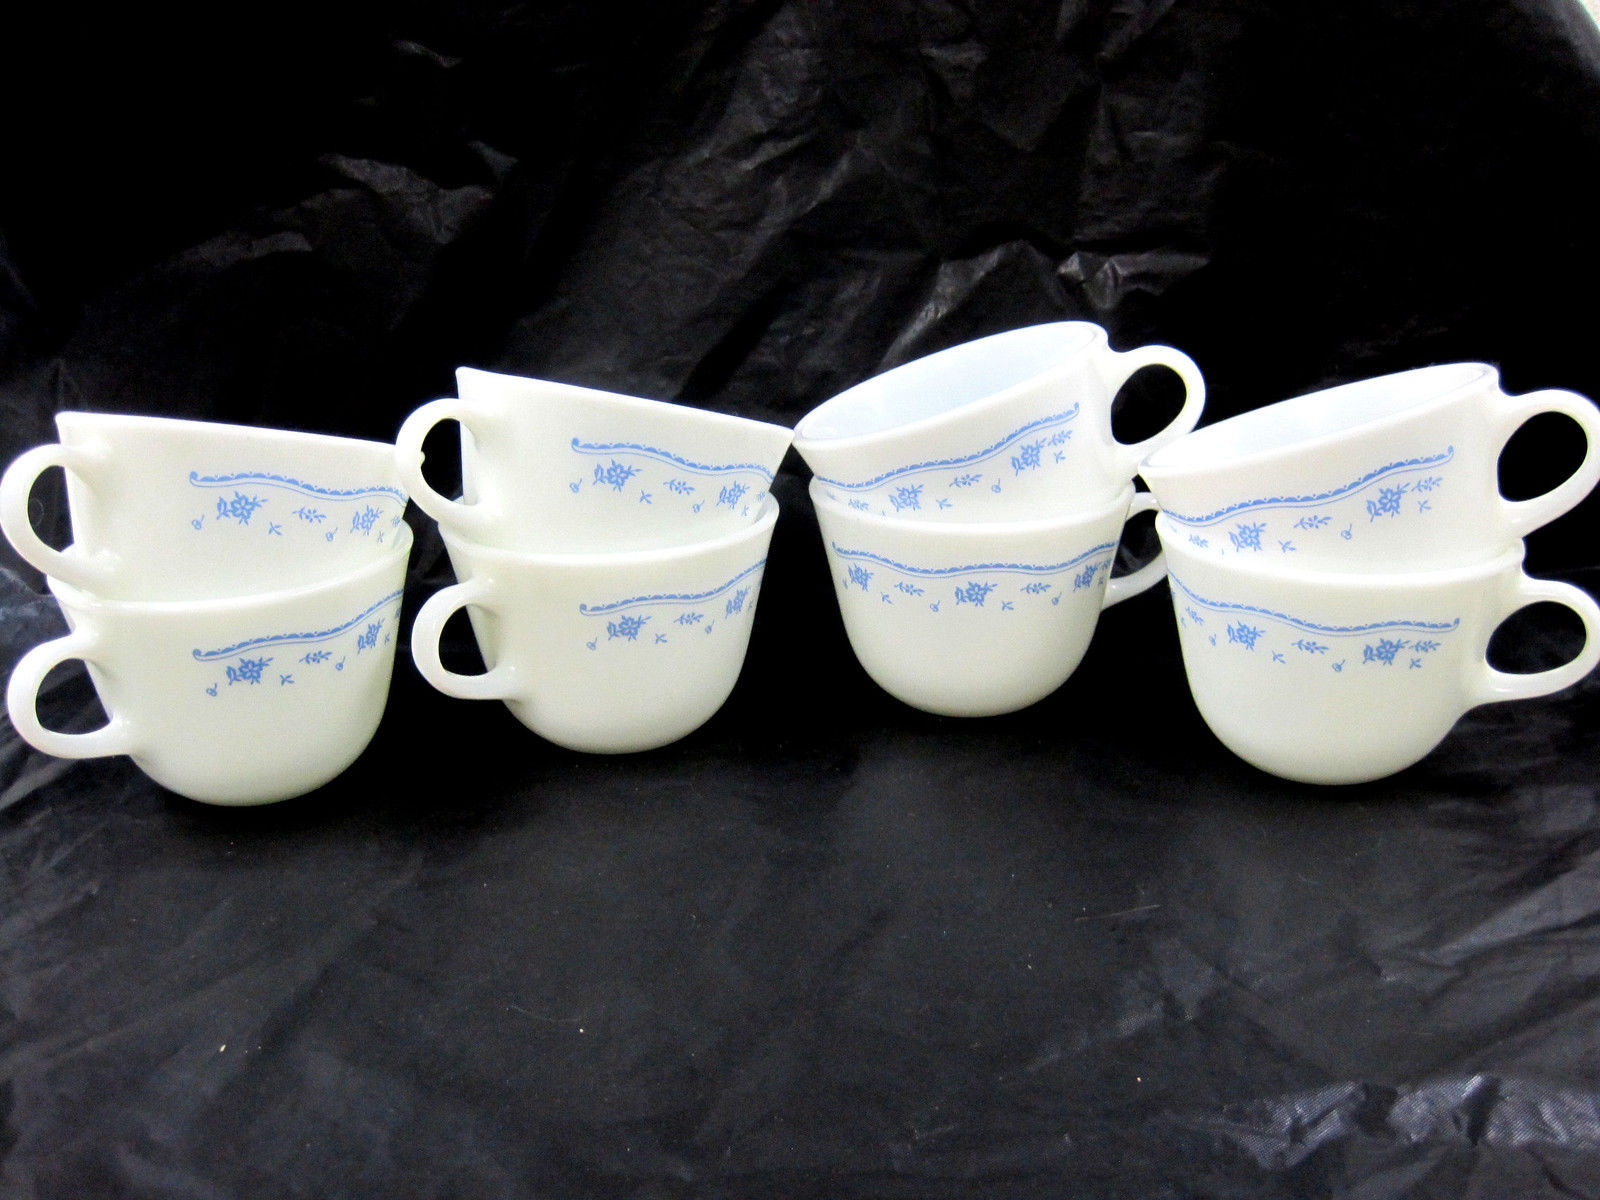 "8 Pryex Corning Ware Cup Mug Milk Glass Morning Blue White Vintage 2.5"" Tall"